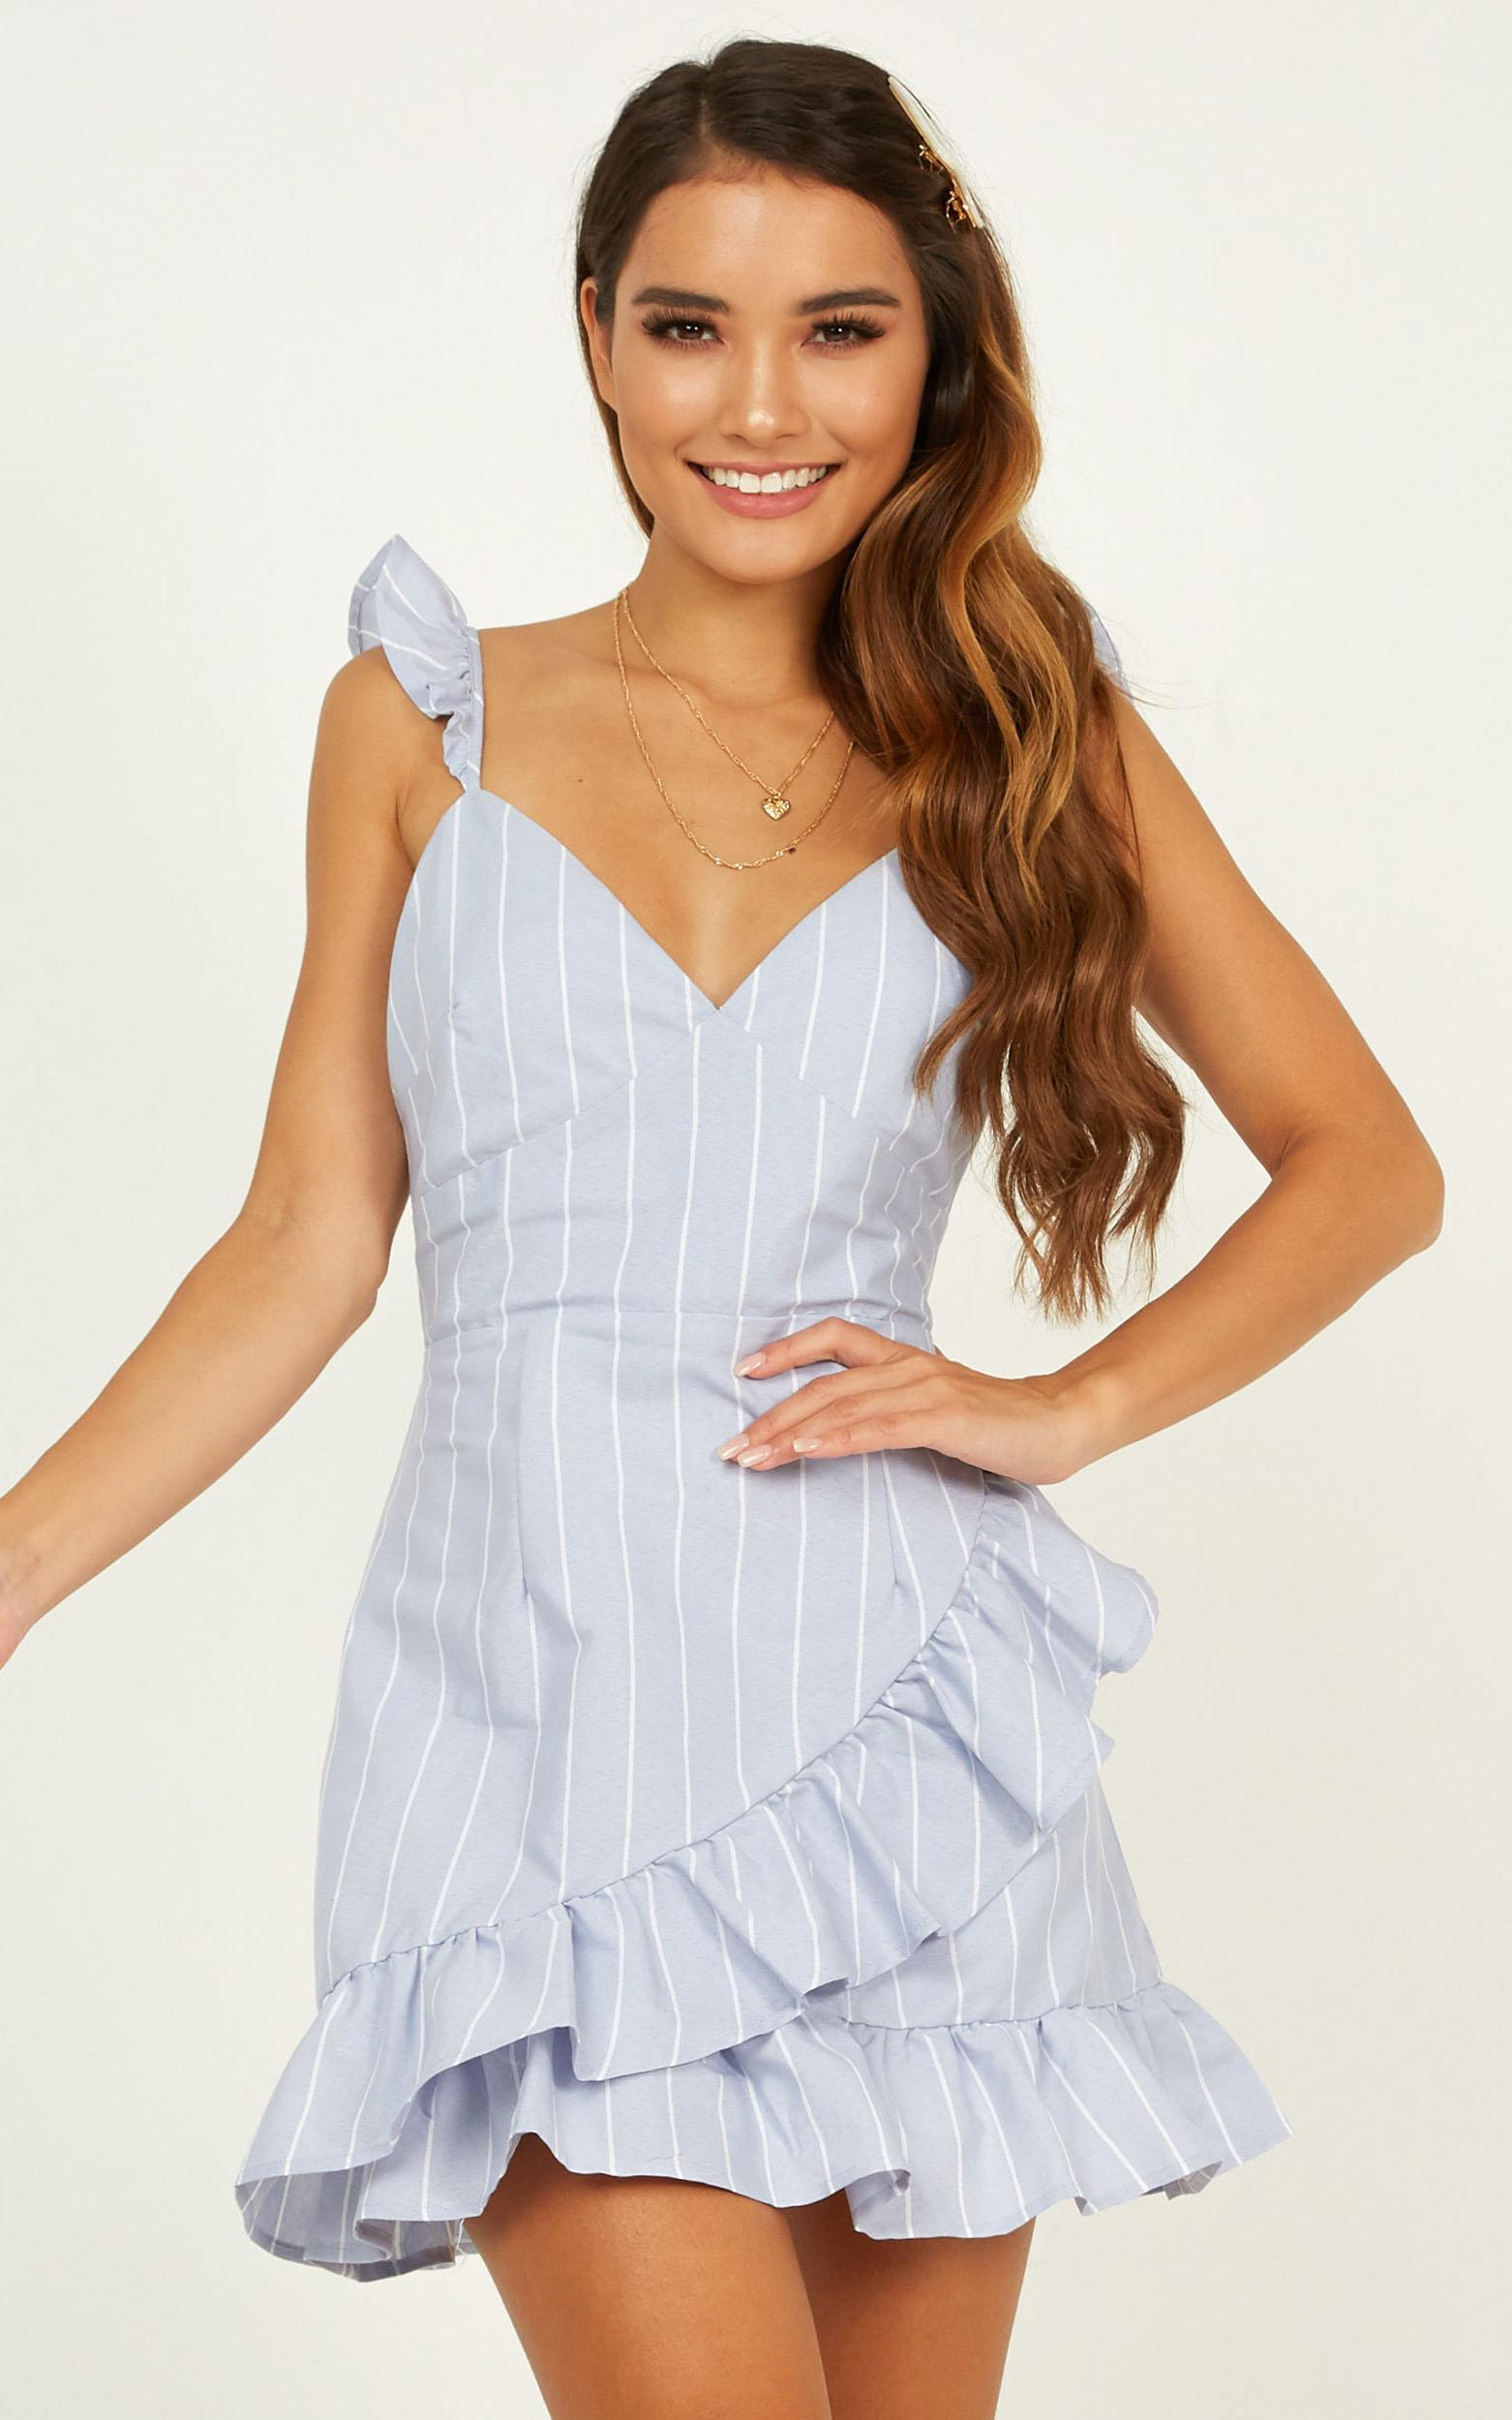 Catching Sails Dress in blue stripe - 20 (XXXXL), Blue, hi-res image number null